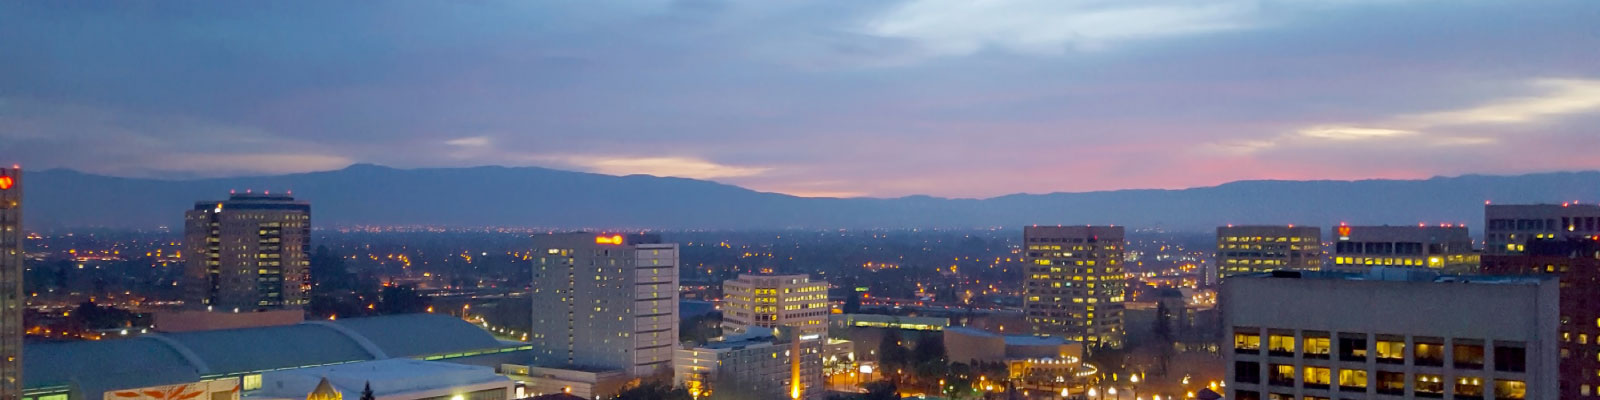 view of downtown San Jose CA at dusk, with lit buildings